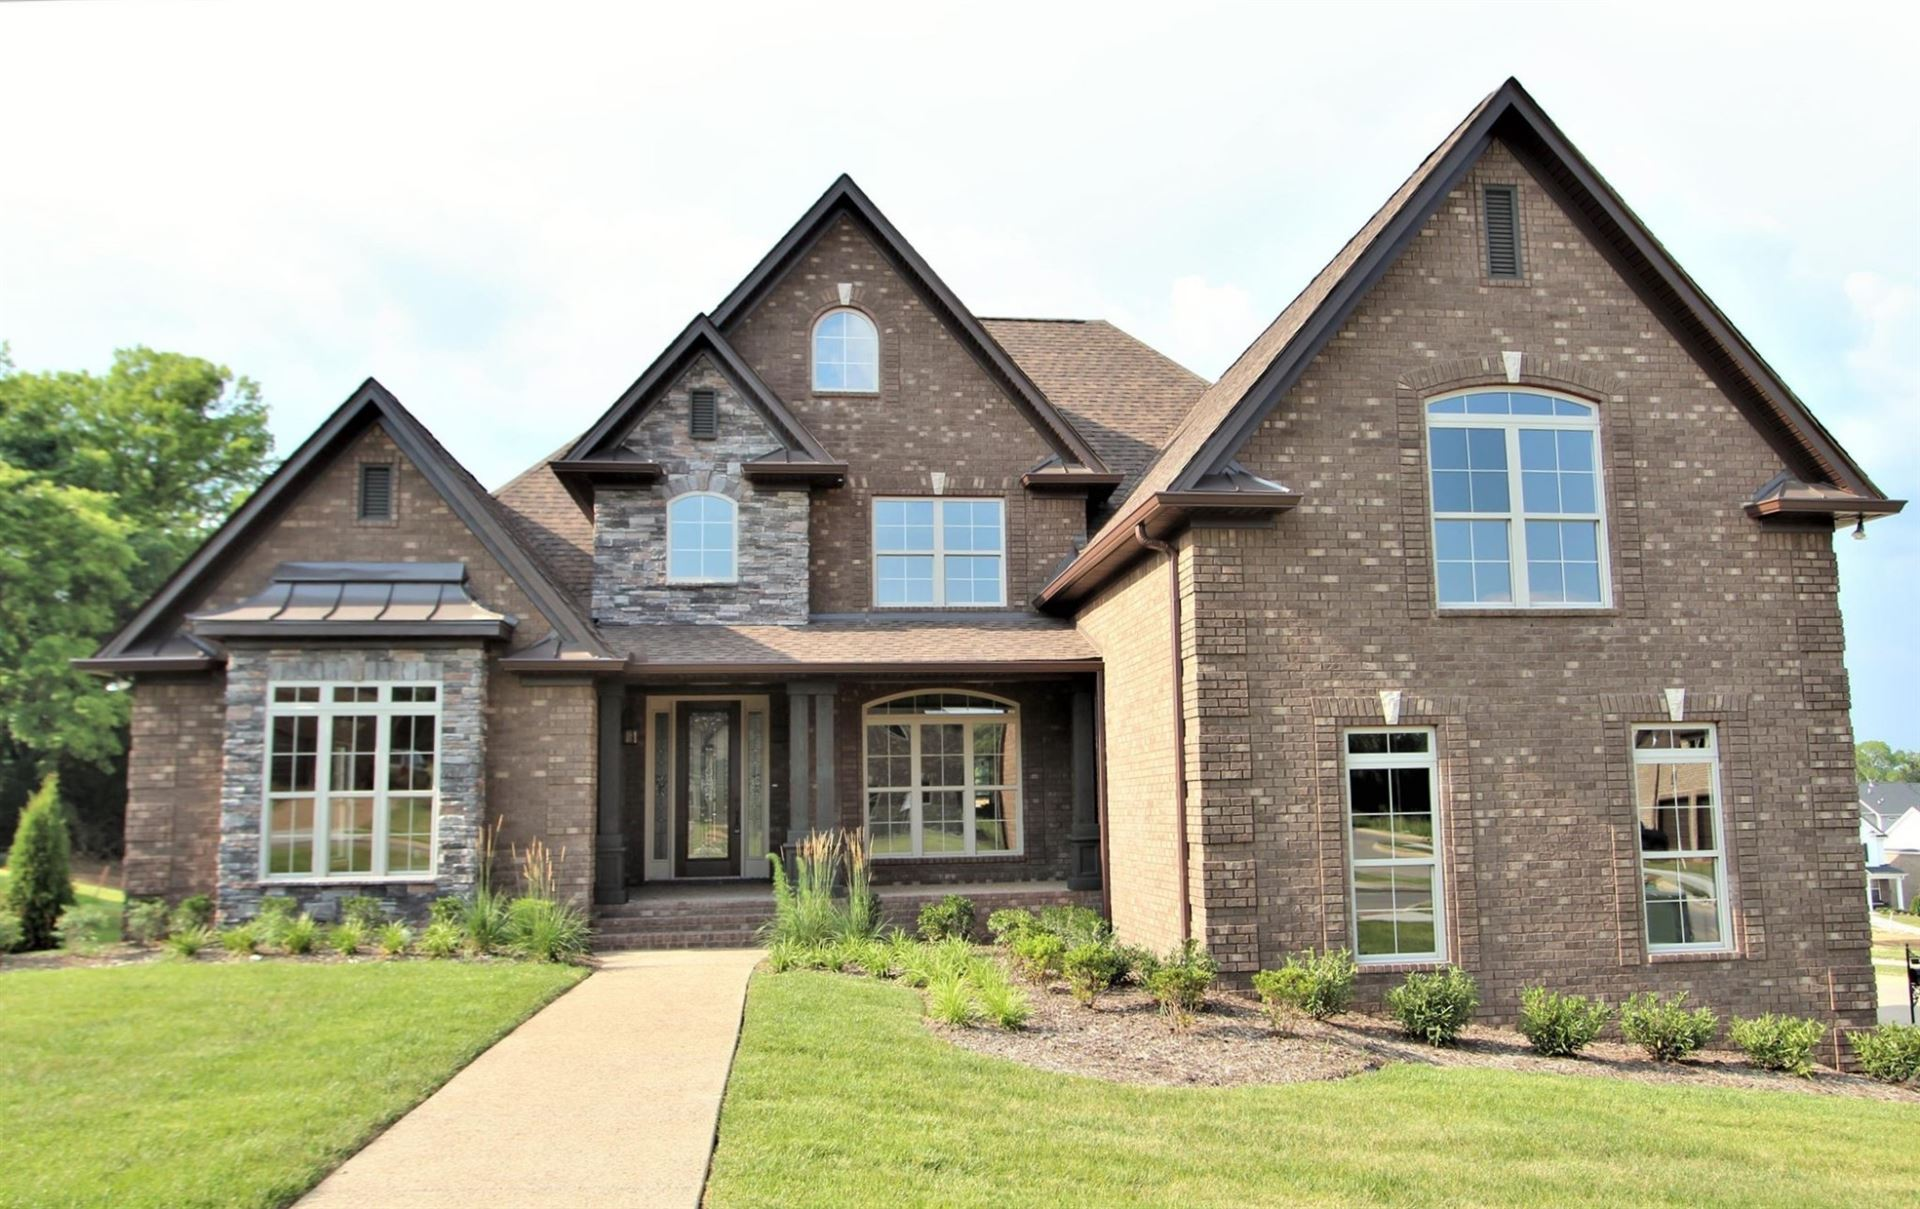 505 Montrose Way, Mount Juliet, TN 37122 - MLS#: 2246547